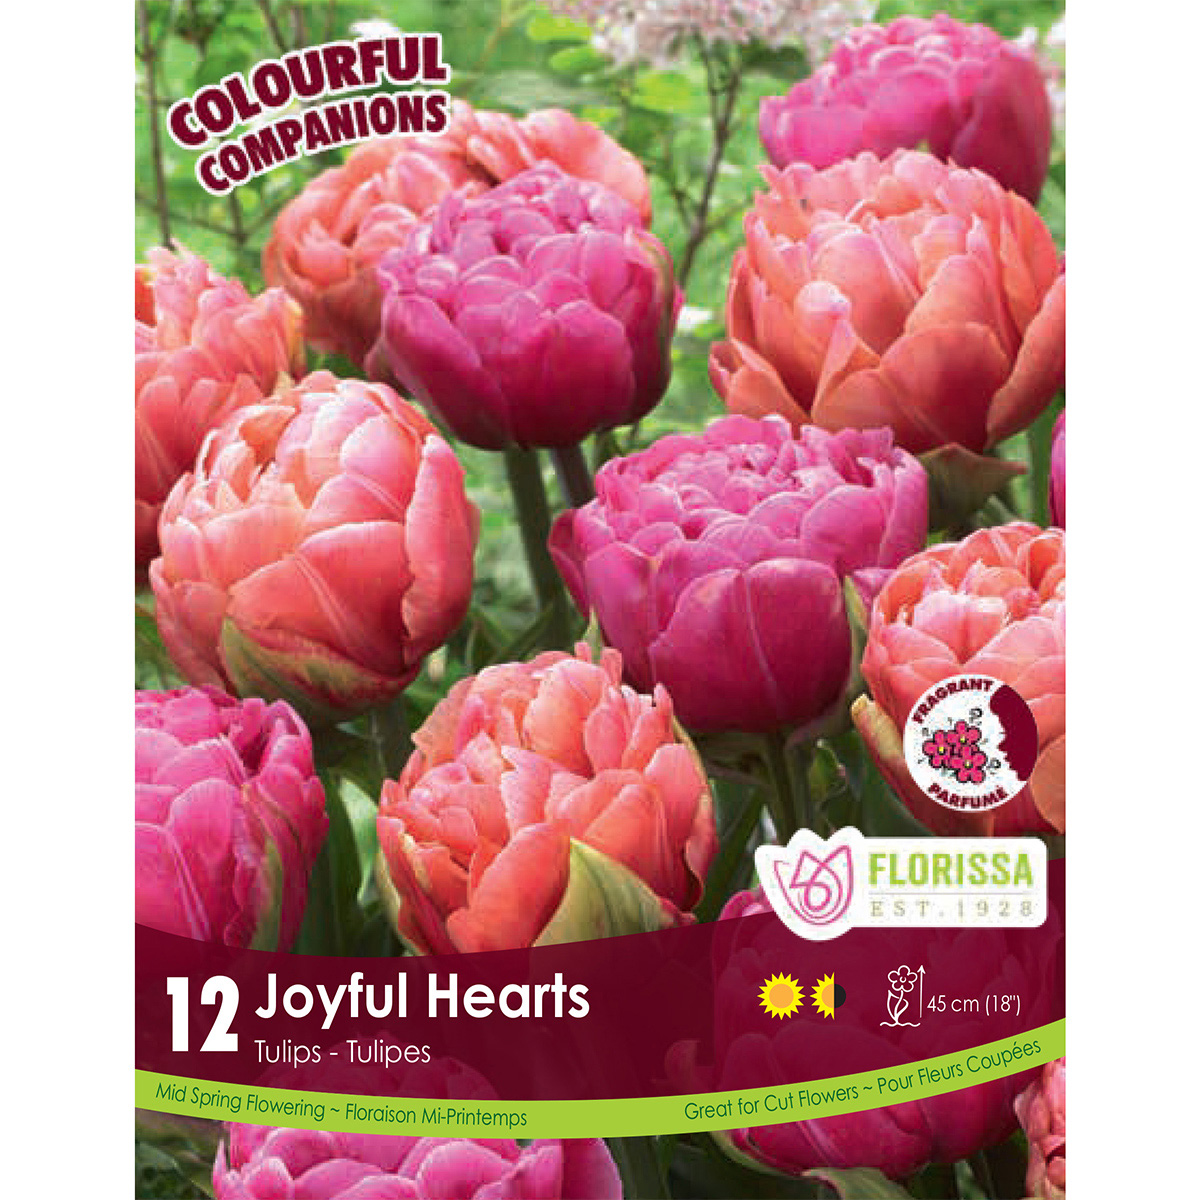 Colourful Companions Tulipa 'Joyful Hearts' Bulbs